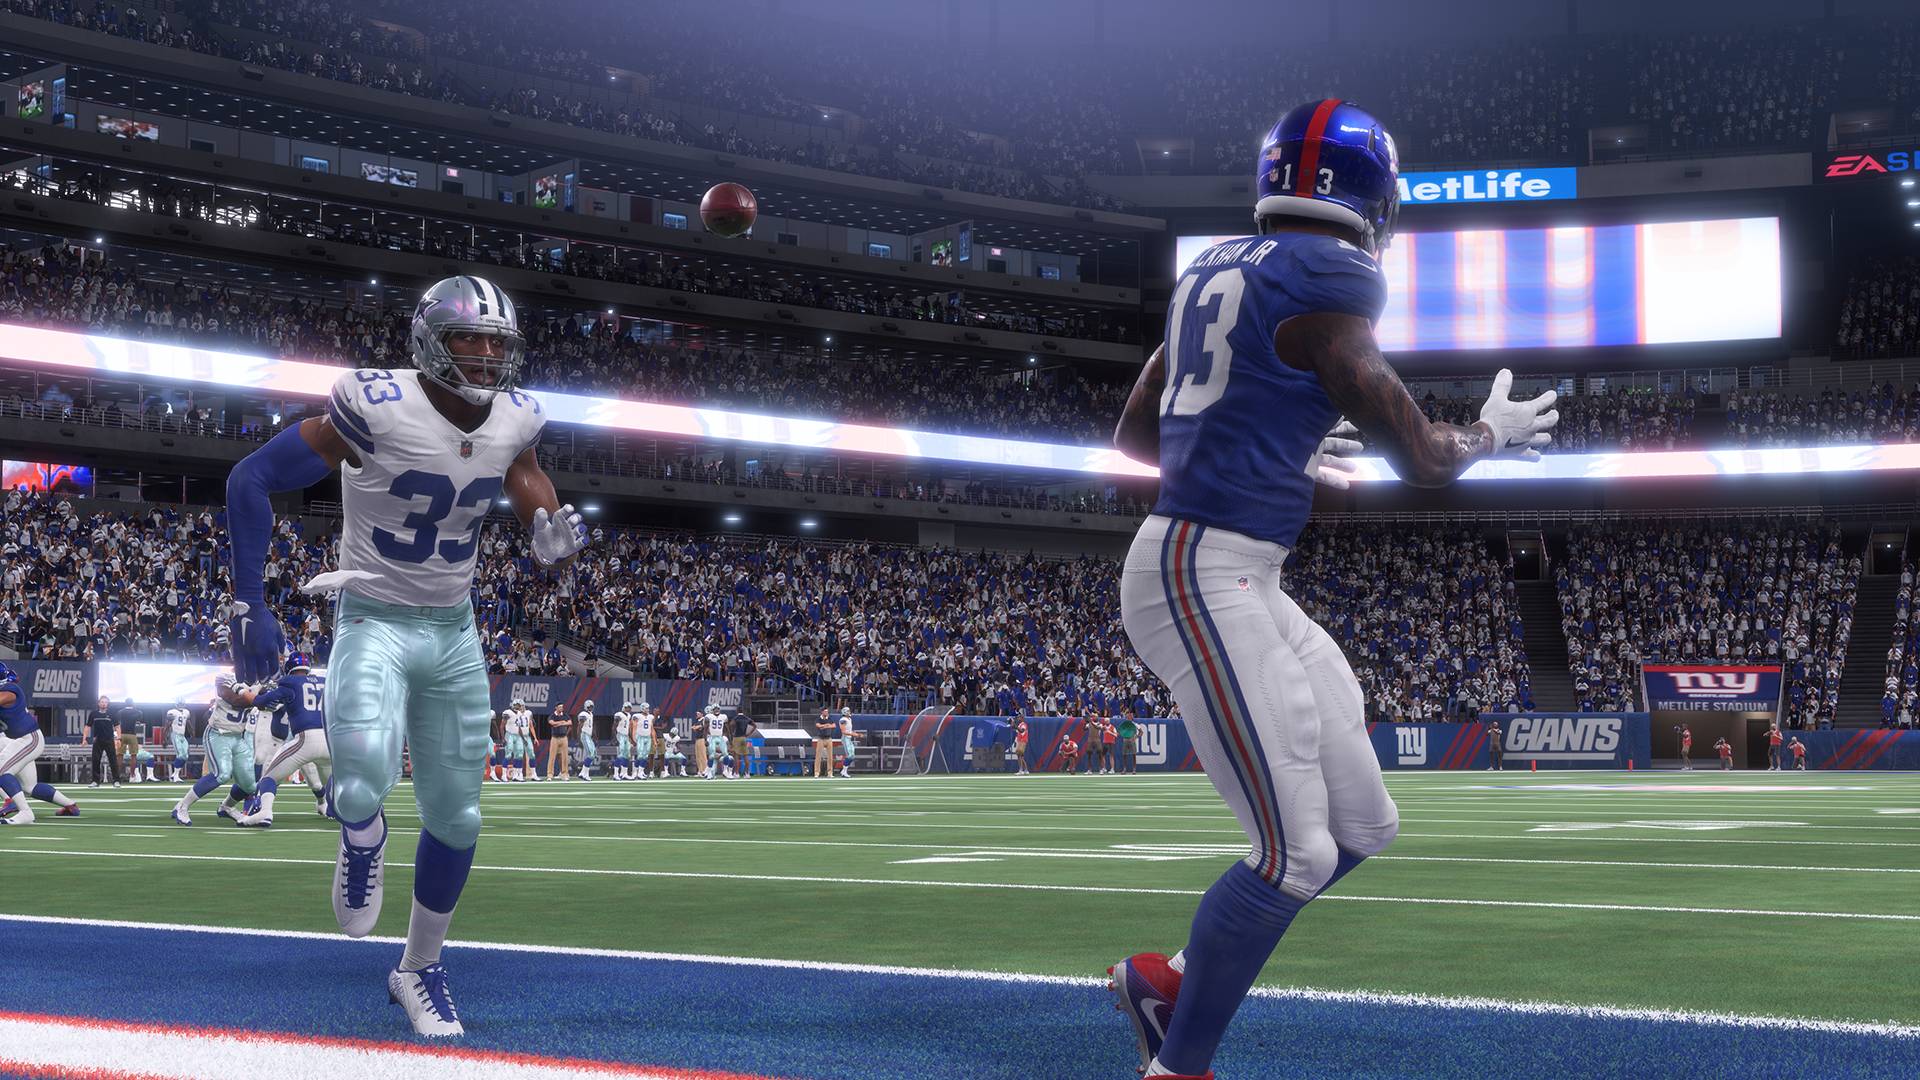 Review: Madden 18 is the definitive Madden experience